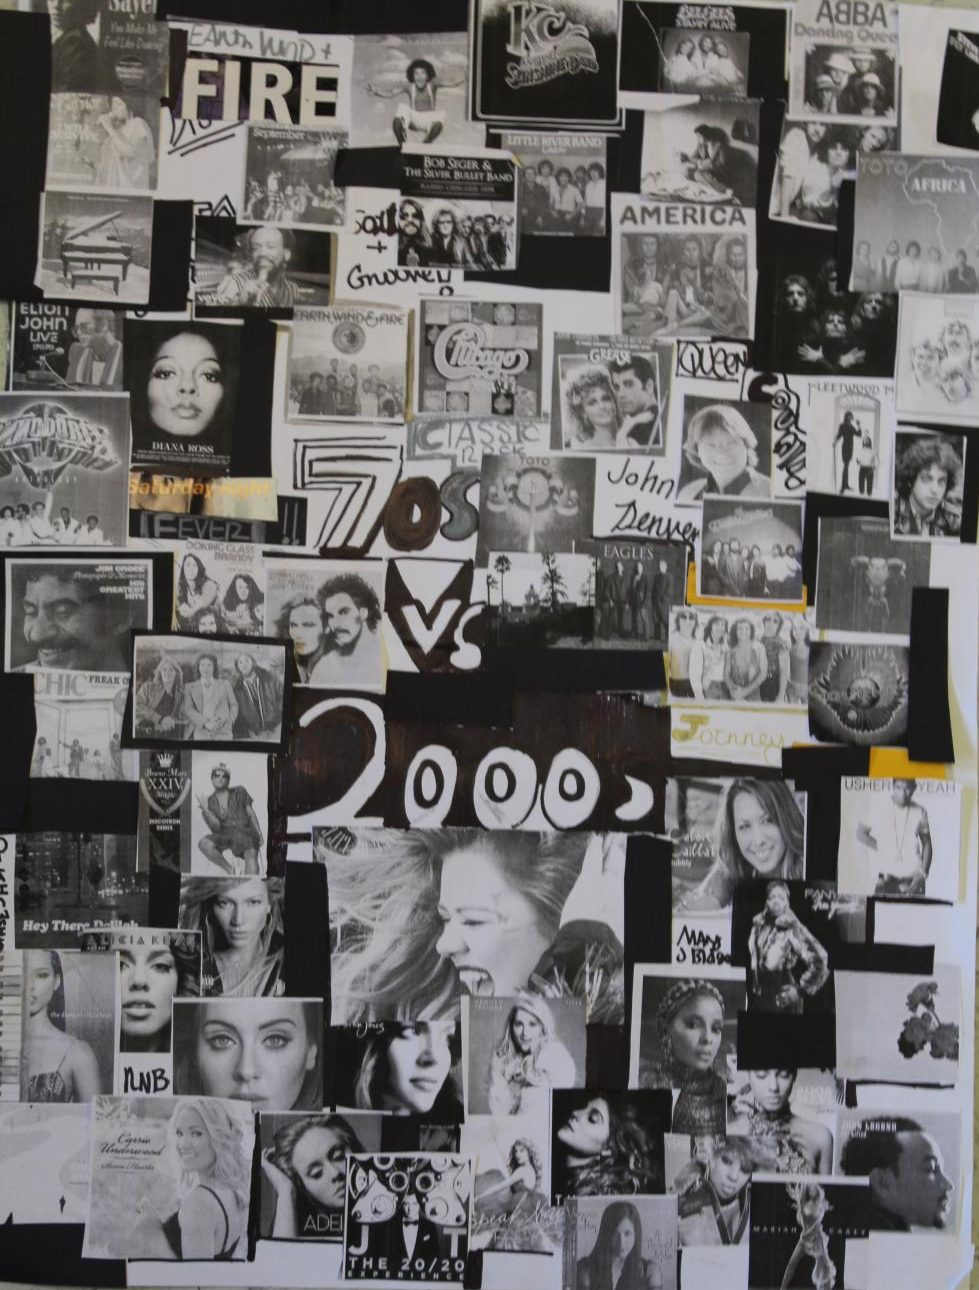 "This art piece focuses on the popular artists and bands in the 70s in comparison to the 21st century, the early 2000s mainly. The 70s-primarily disco, spoke to the generation with popular artists such as The Bee Gees singing the hit ""Stayin Alive,"" Gloria Gaynor singing ""I Will Survive"", Abba with their hit ""Dancing Queen"" and a plethora of others. These artists emulated the disco lifestyle. In addition to disco, Classic rock and pop groups like The Doobie Brothers, Queen with the classic ""Bohemian Rhapsody"", Toto with popular songs ""Hold the Line"" and ""Africa"", and other groups became the voices of the generation. Just as the 21st century, especially the early 2000s, relied on mainstream pop, R&B, and hip hop.  Artists like Alicia Keys singing ""If I Ain't Got You,"" Kelly Clarkson winning the inaugural season of American Idol with hits like ""What Doesn't Kill You Makes You Stronger"", Adele singing ""Someone Like You"" and others fed into the mainstream ruled generation."